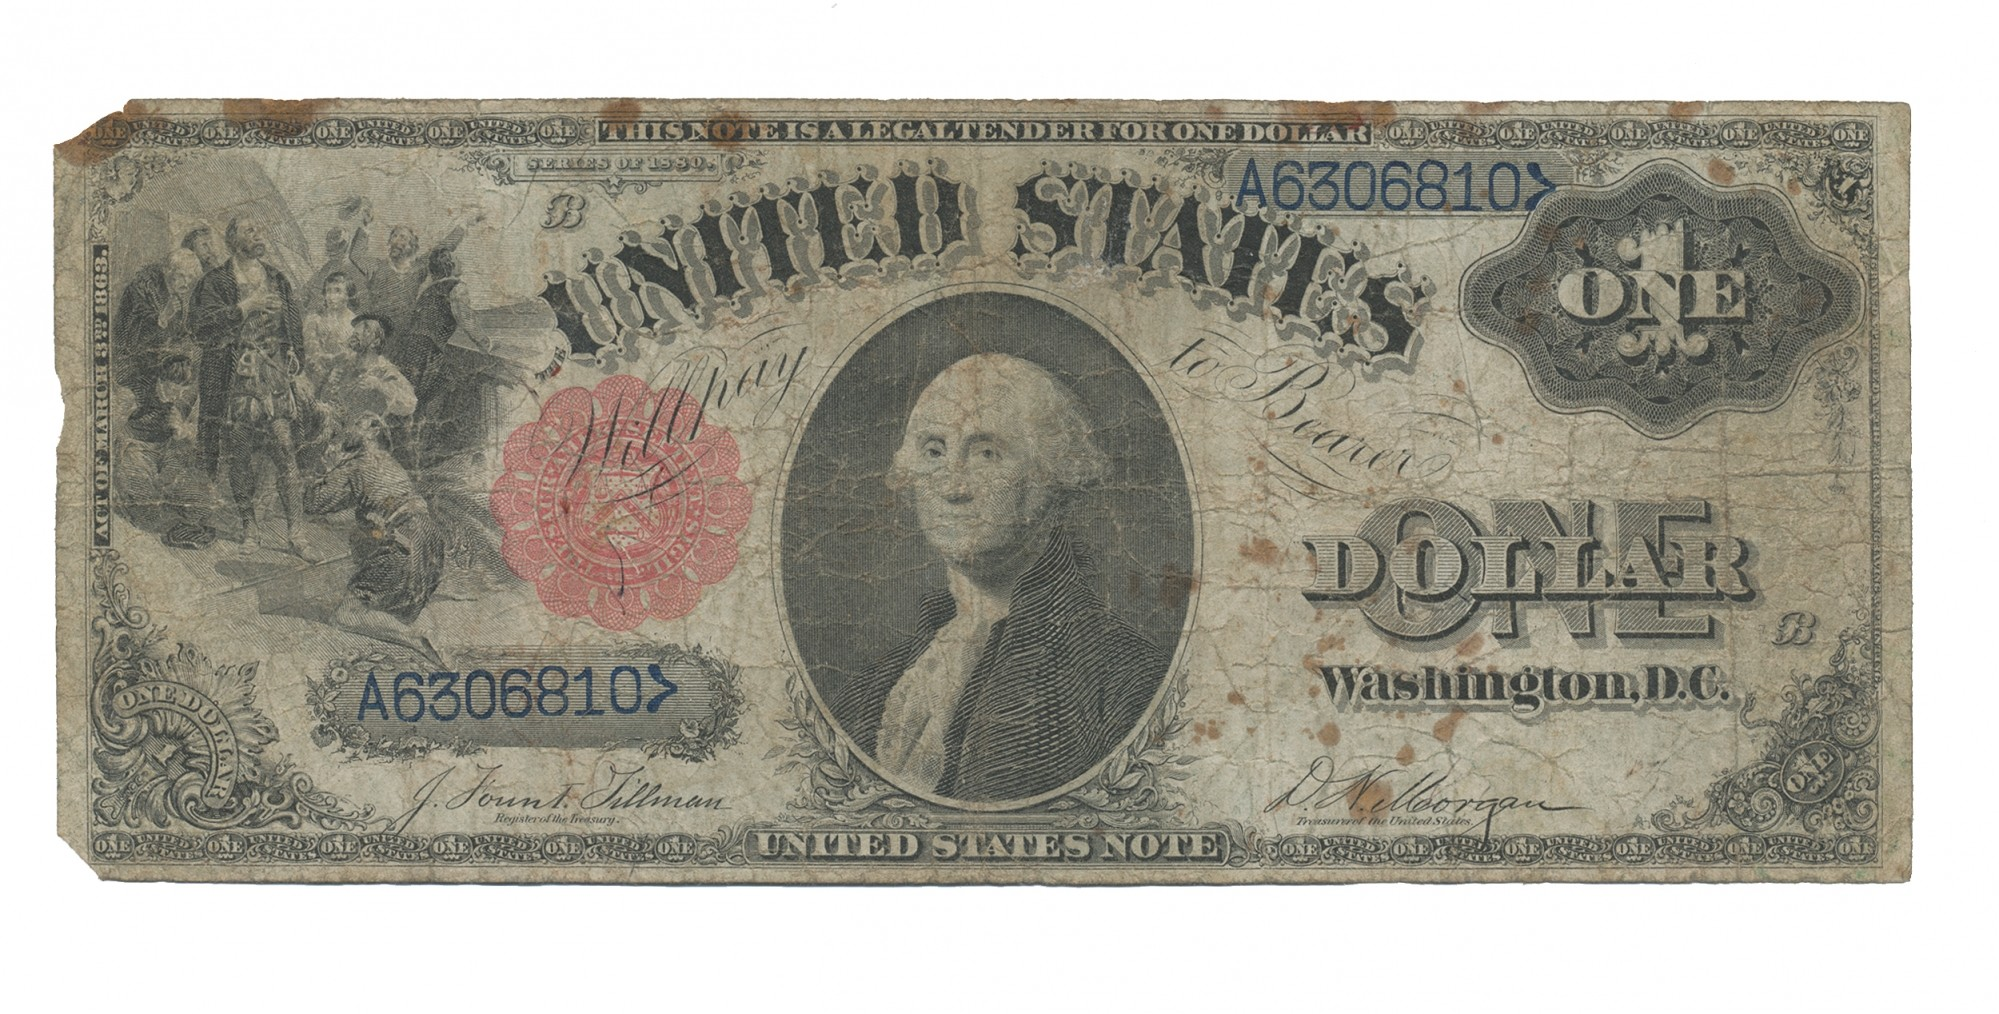 SERIES OF 1880 US ONE DOLLAR BILL